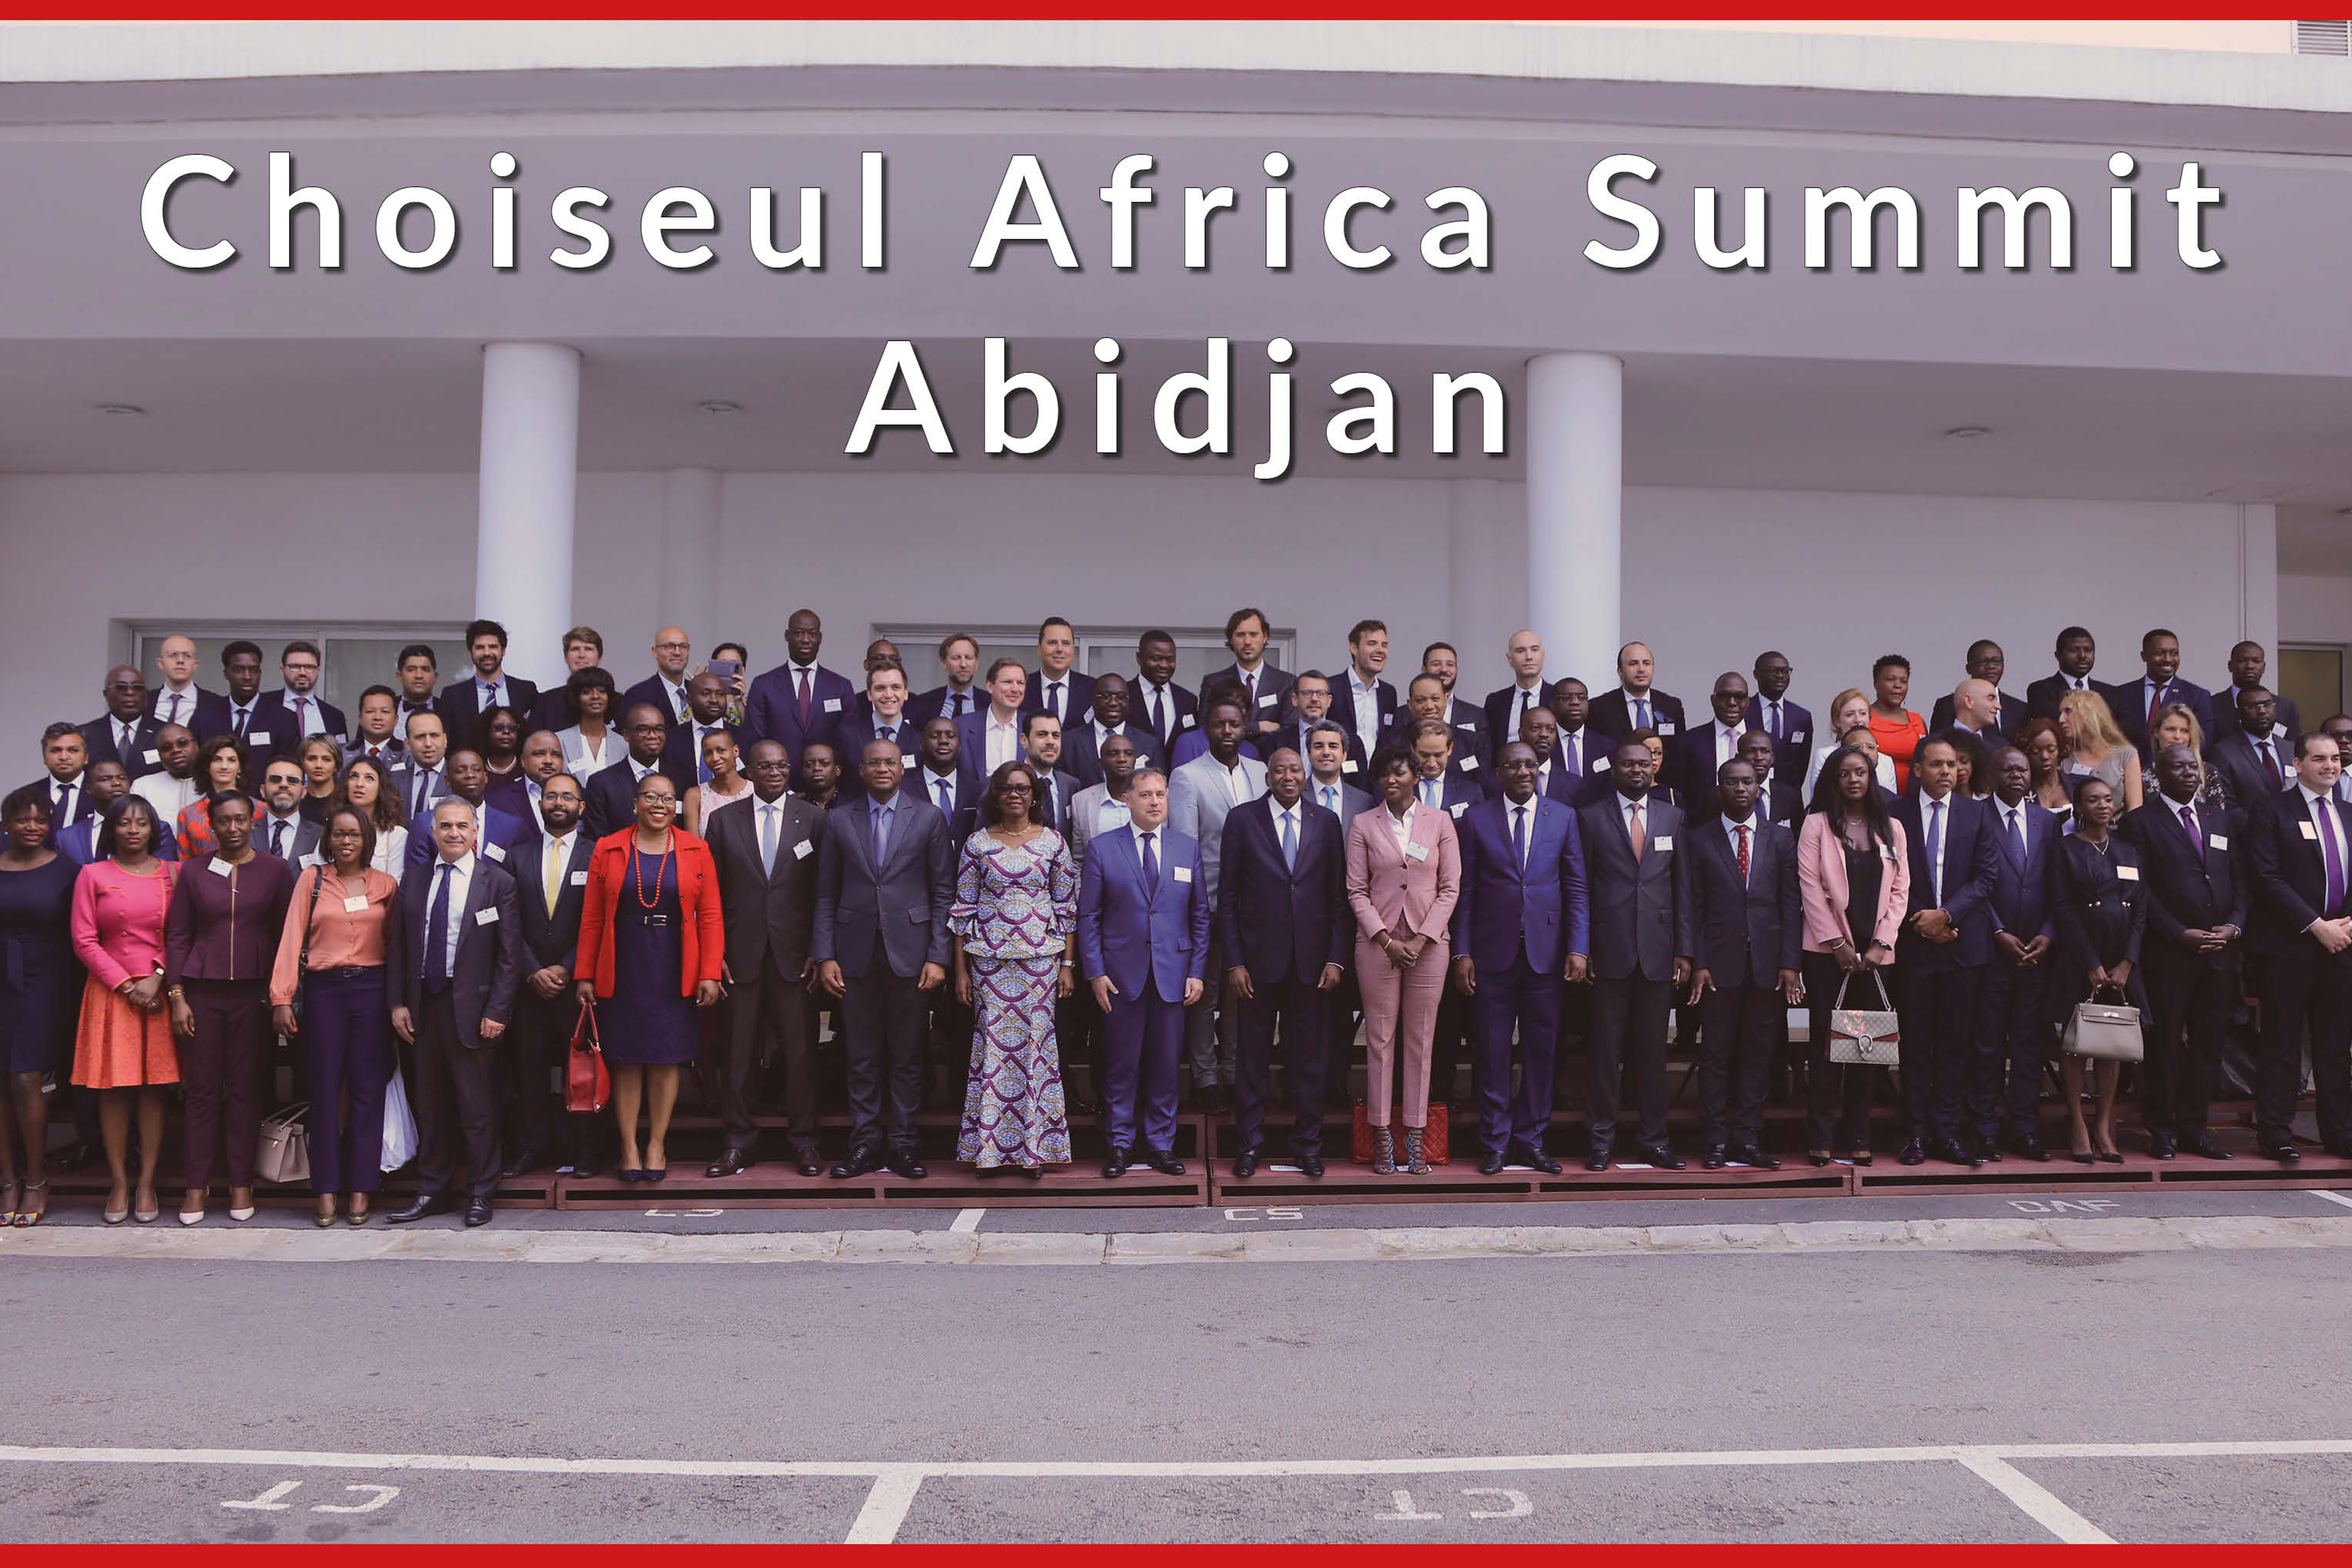 Video – Choiseul Africa Summit Abidjan